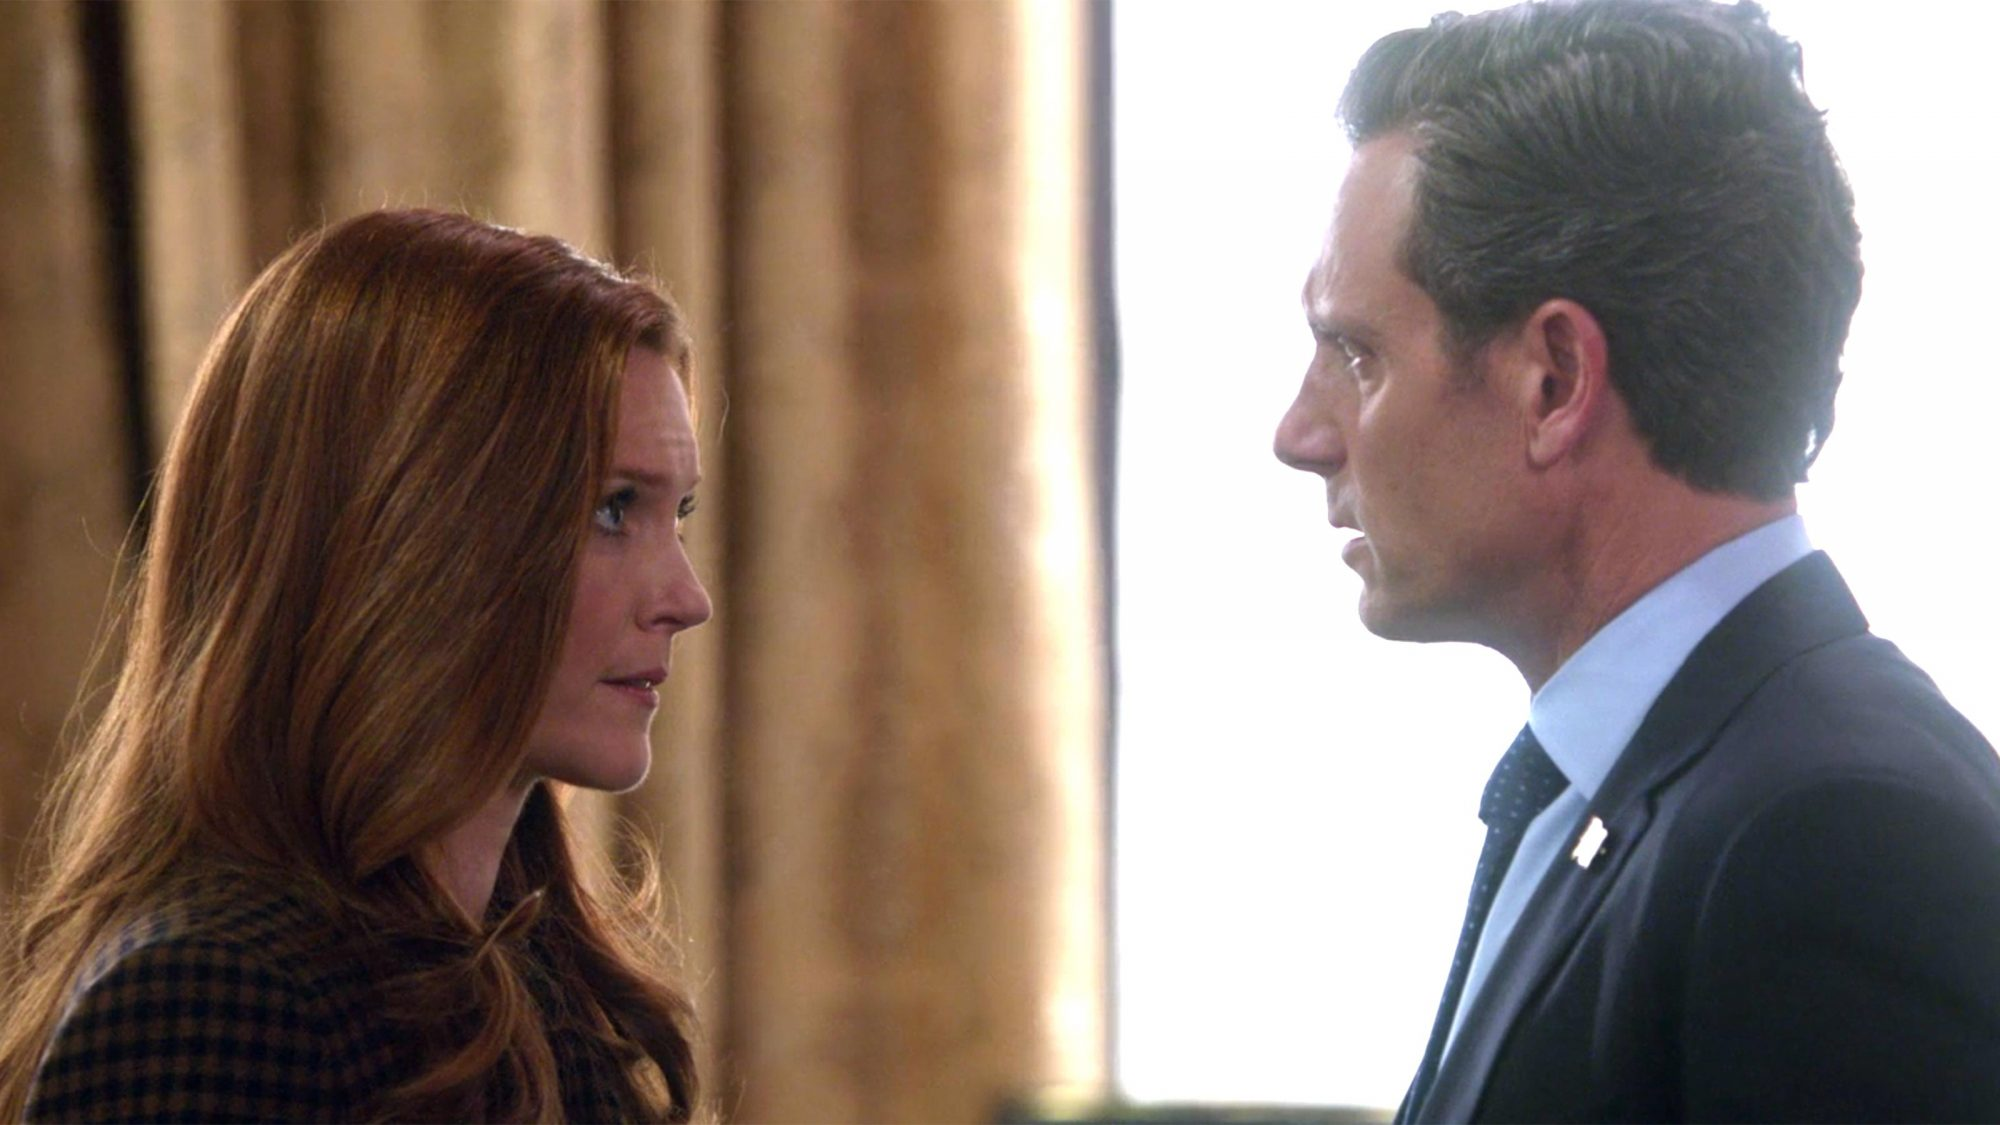 Darby Stanchfield (Abby Whelan): 'I See You' (season 5, episode 14)